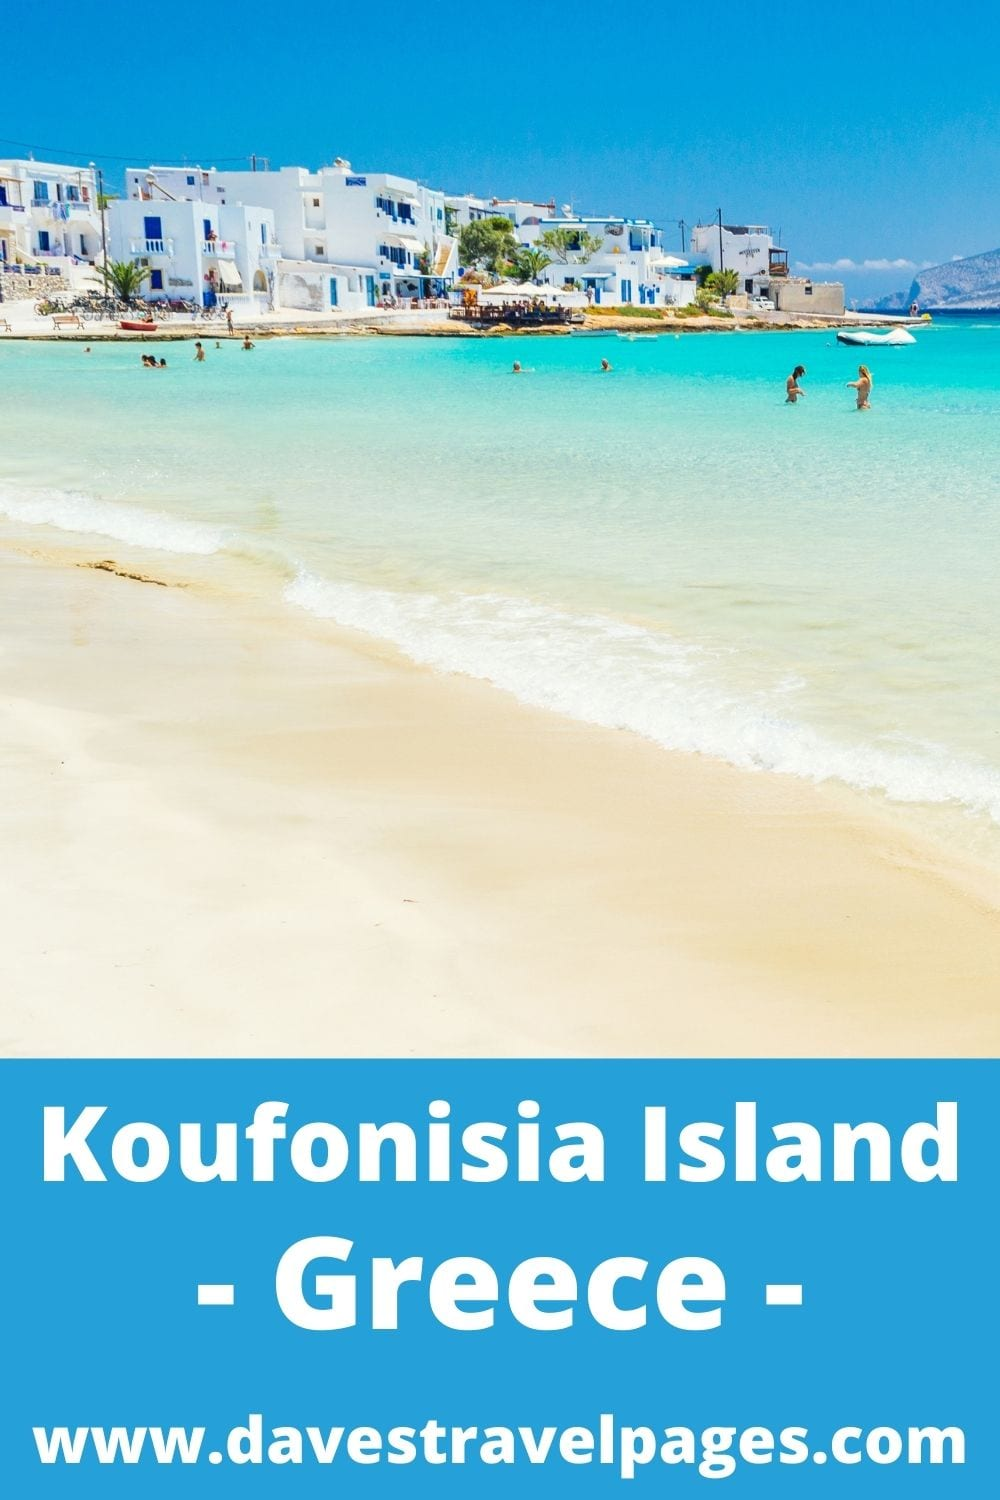 How to get from Athens to Koufonisia in Greece